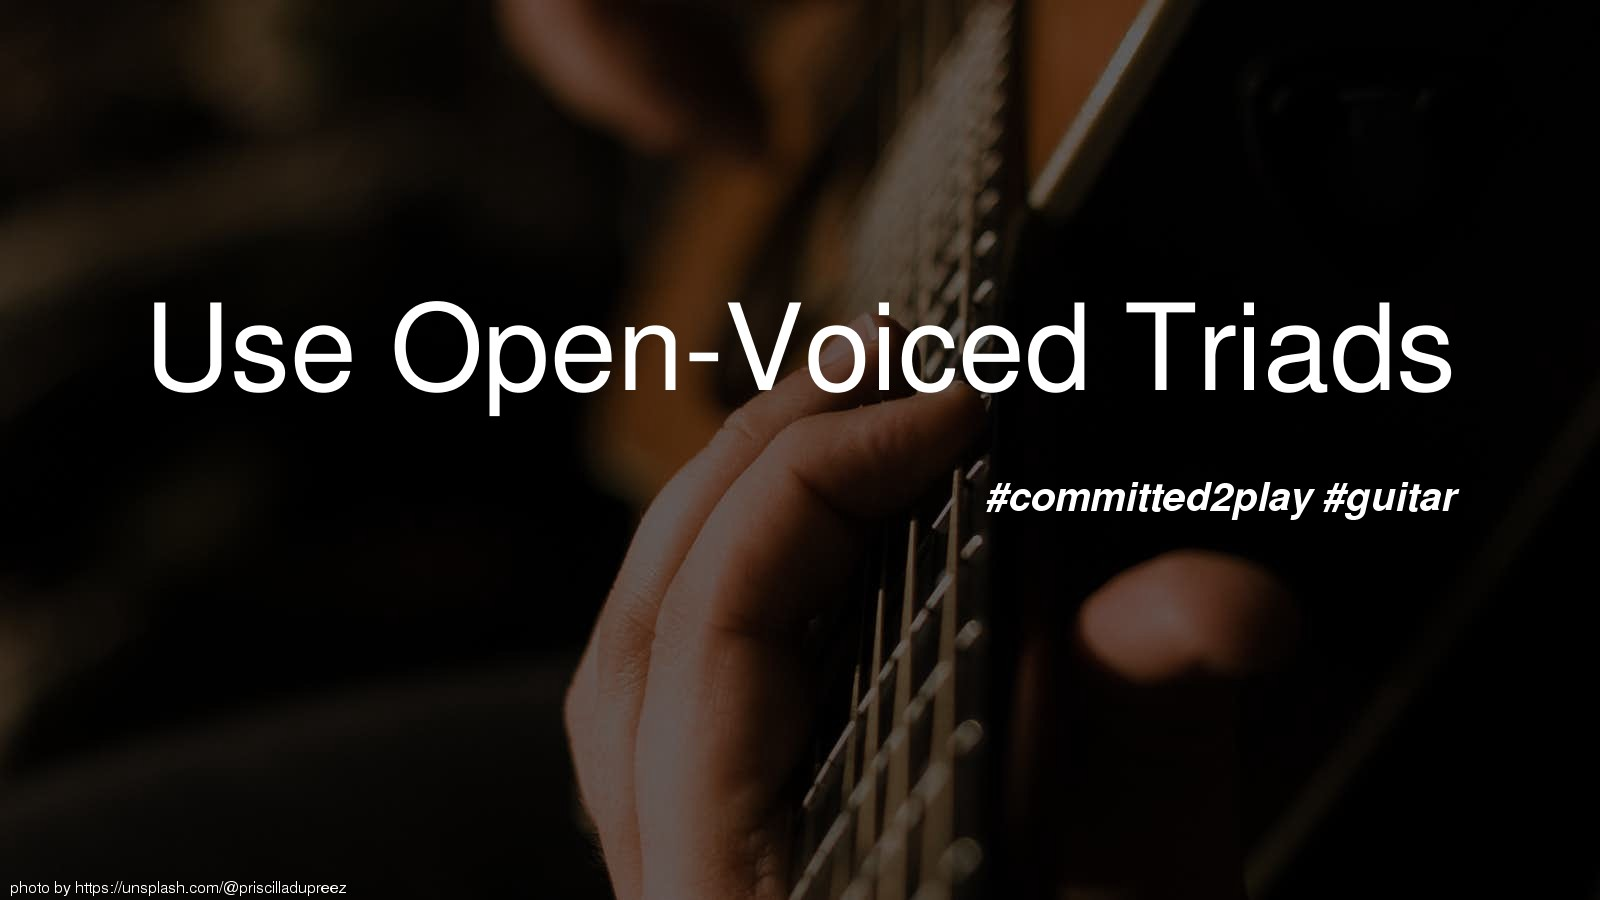 Use Open-Voiced Triads